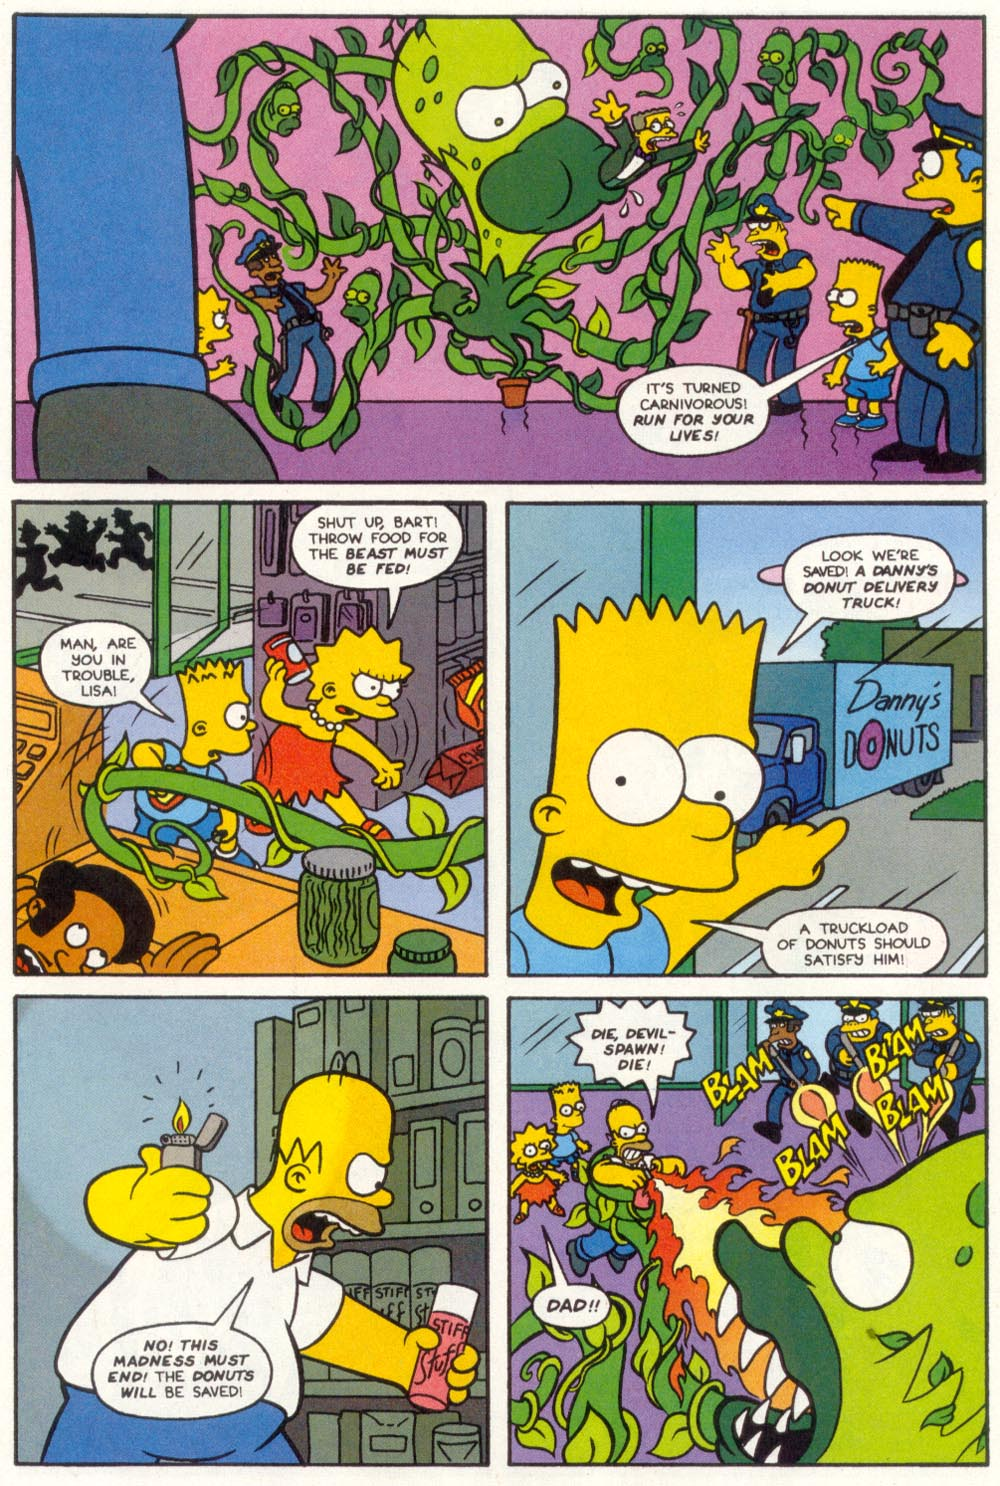 Read online Treehouse of Horror comic -  Issue #1 - 16